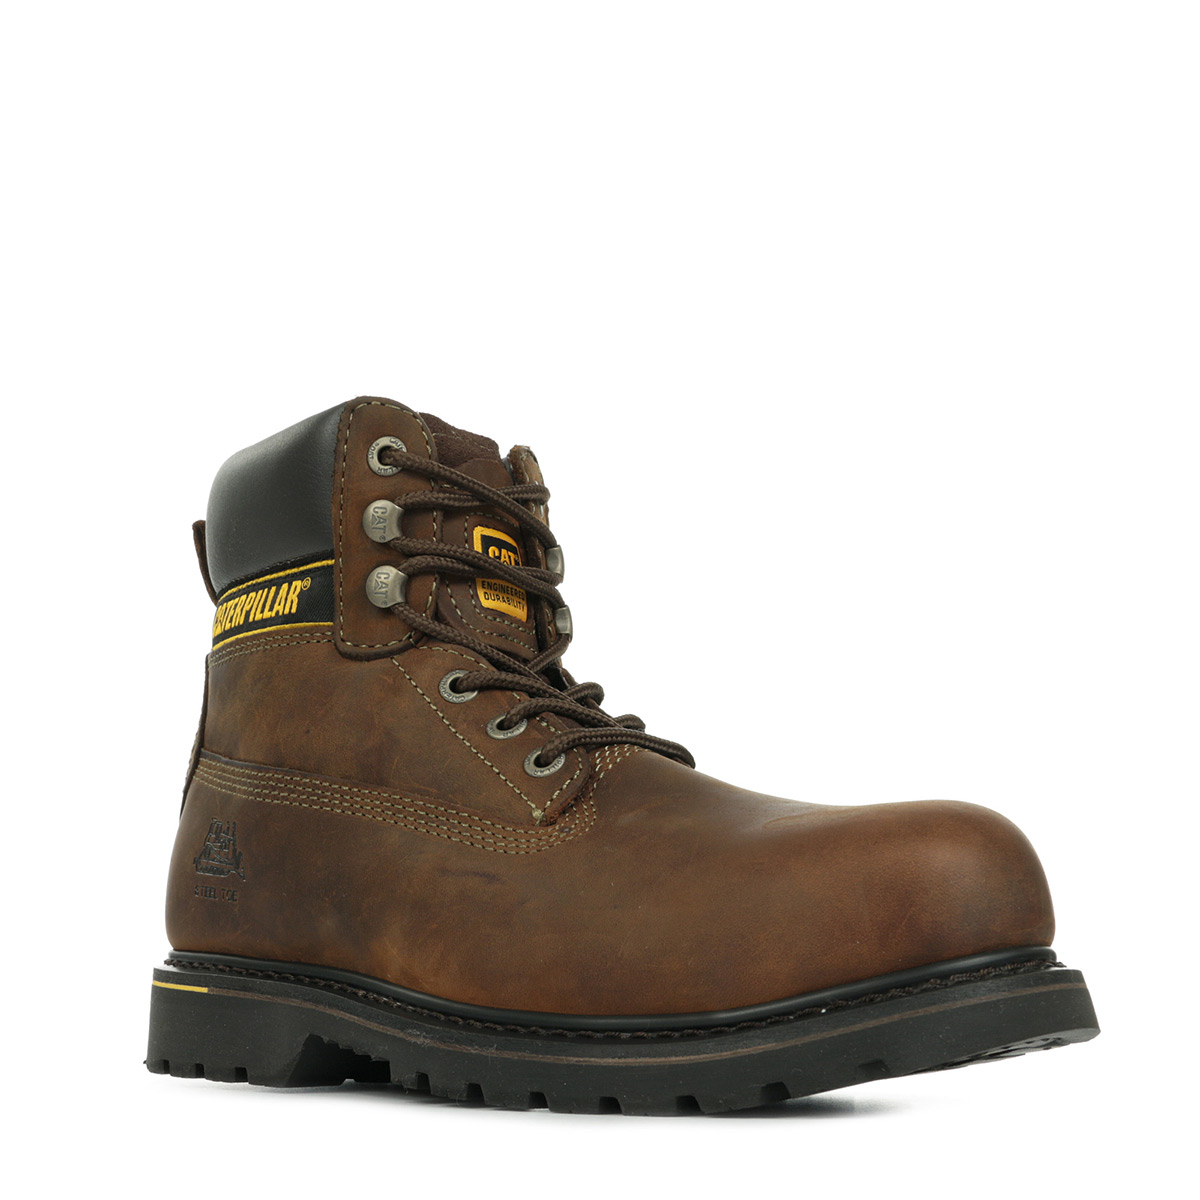 chaussures boots caterpillar homme holton sb taille brun brune cuir lacets ebay. Black Bedroom Furniture Sets. Home Design Ideas